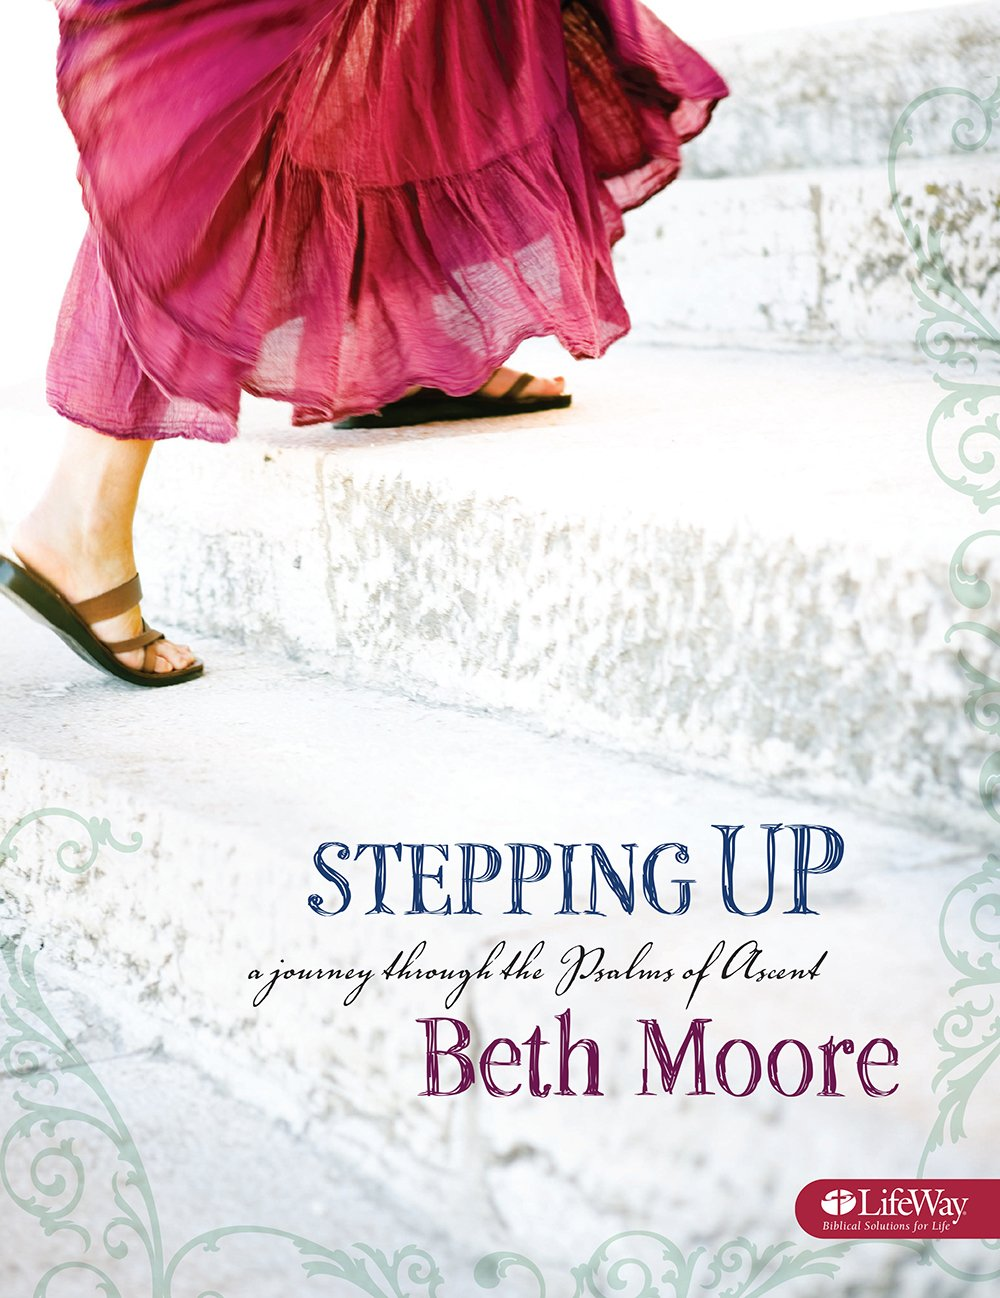 Stepping Up - Bible Study Book: A Journey Through the Psalms of Ascent: Beth  Moore: 9781415857434: Amazon.com: Books